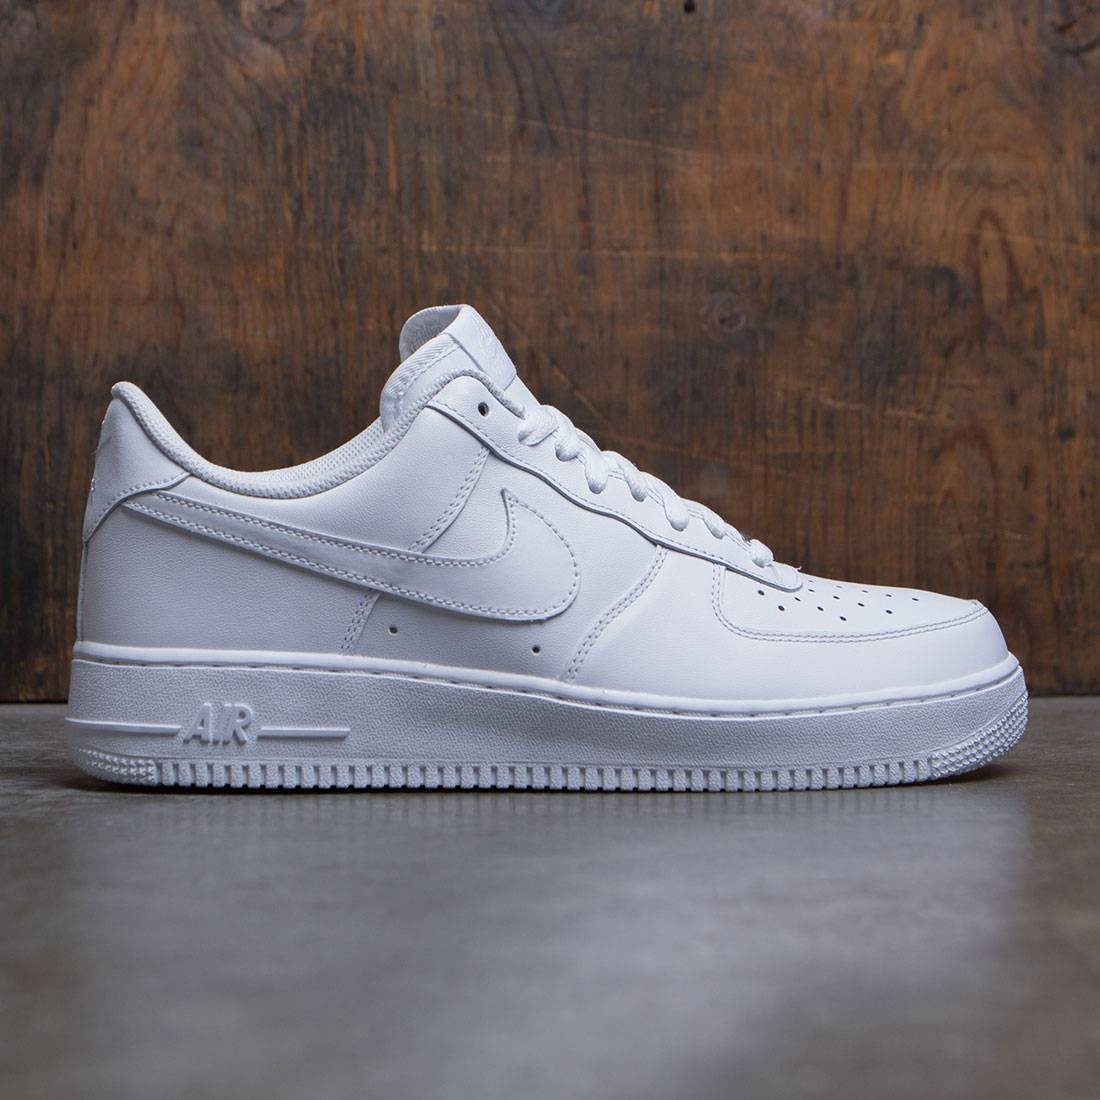 Nike Air Force 1 07 Low (white / white)